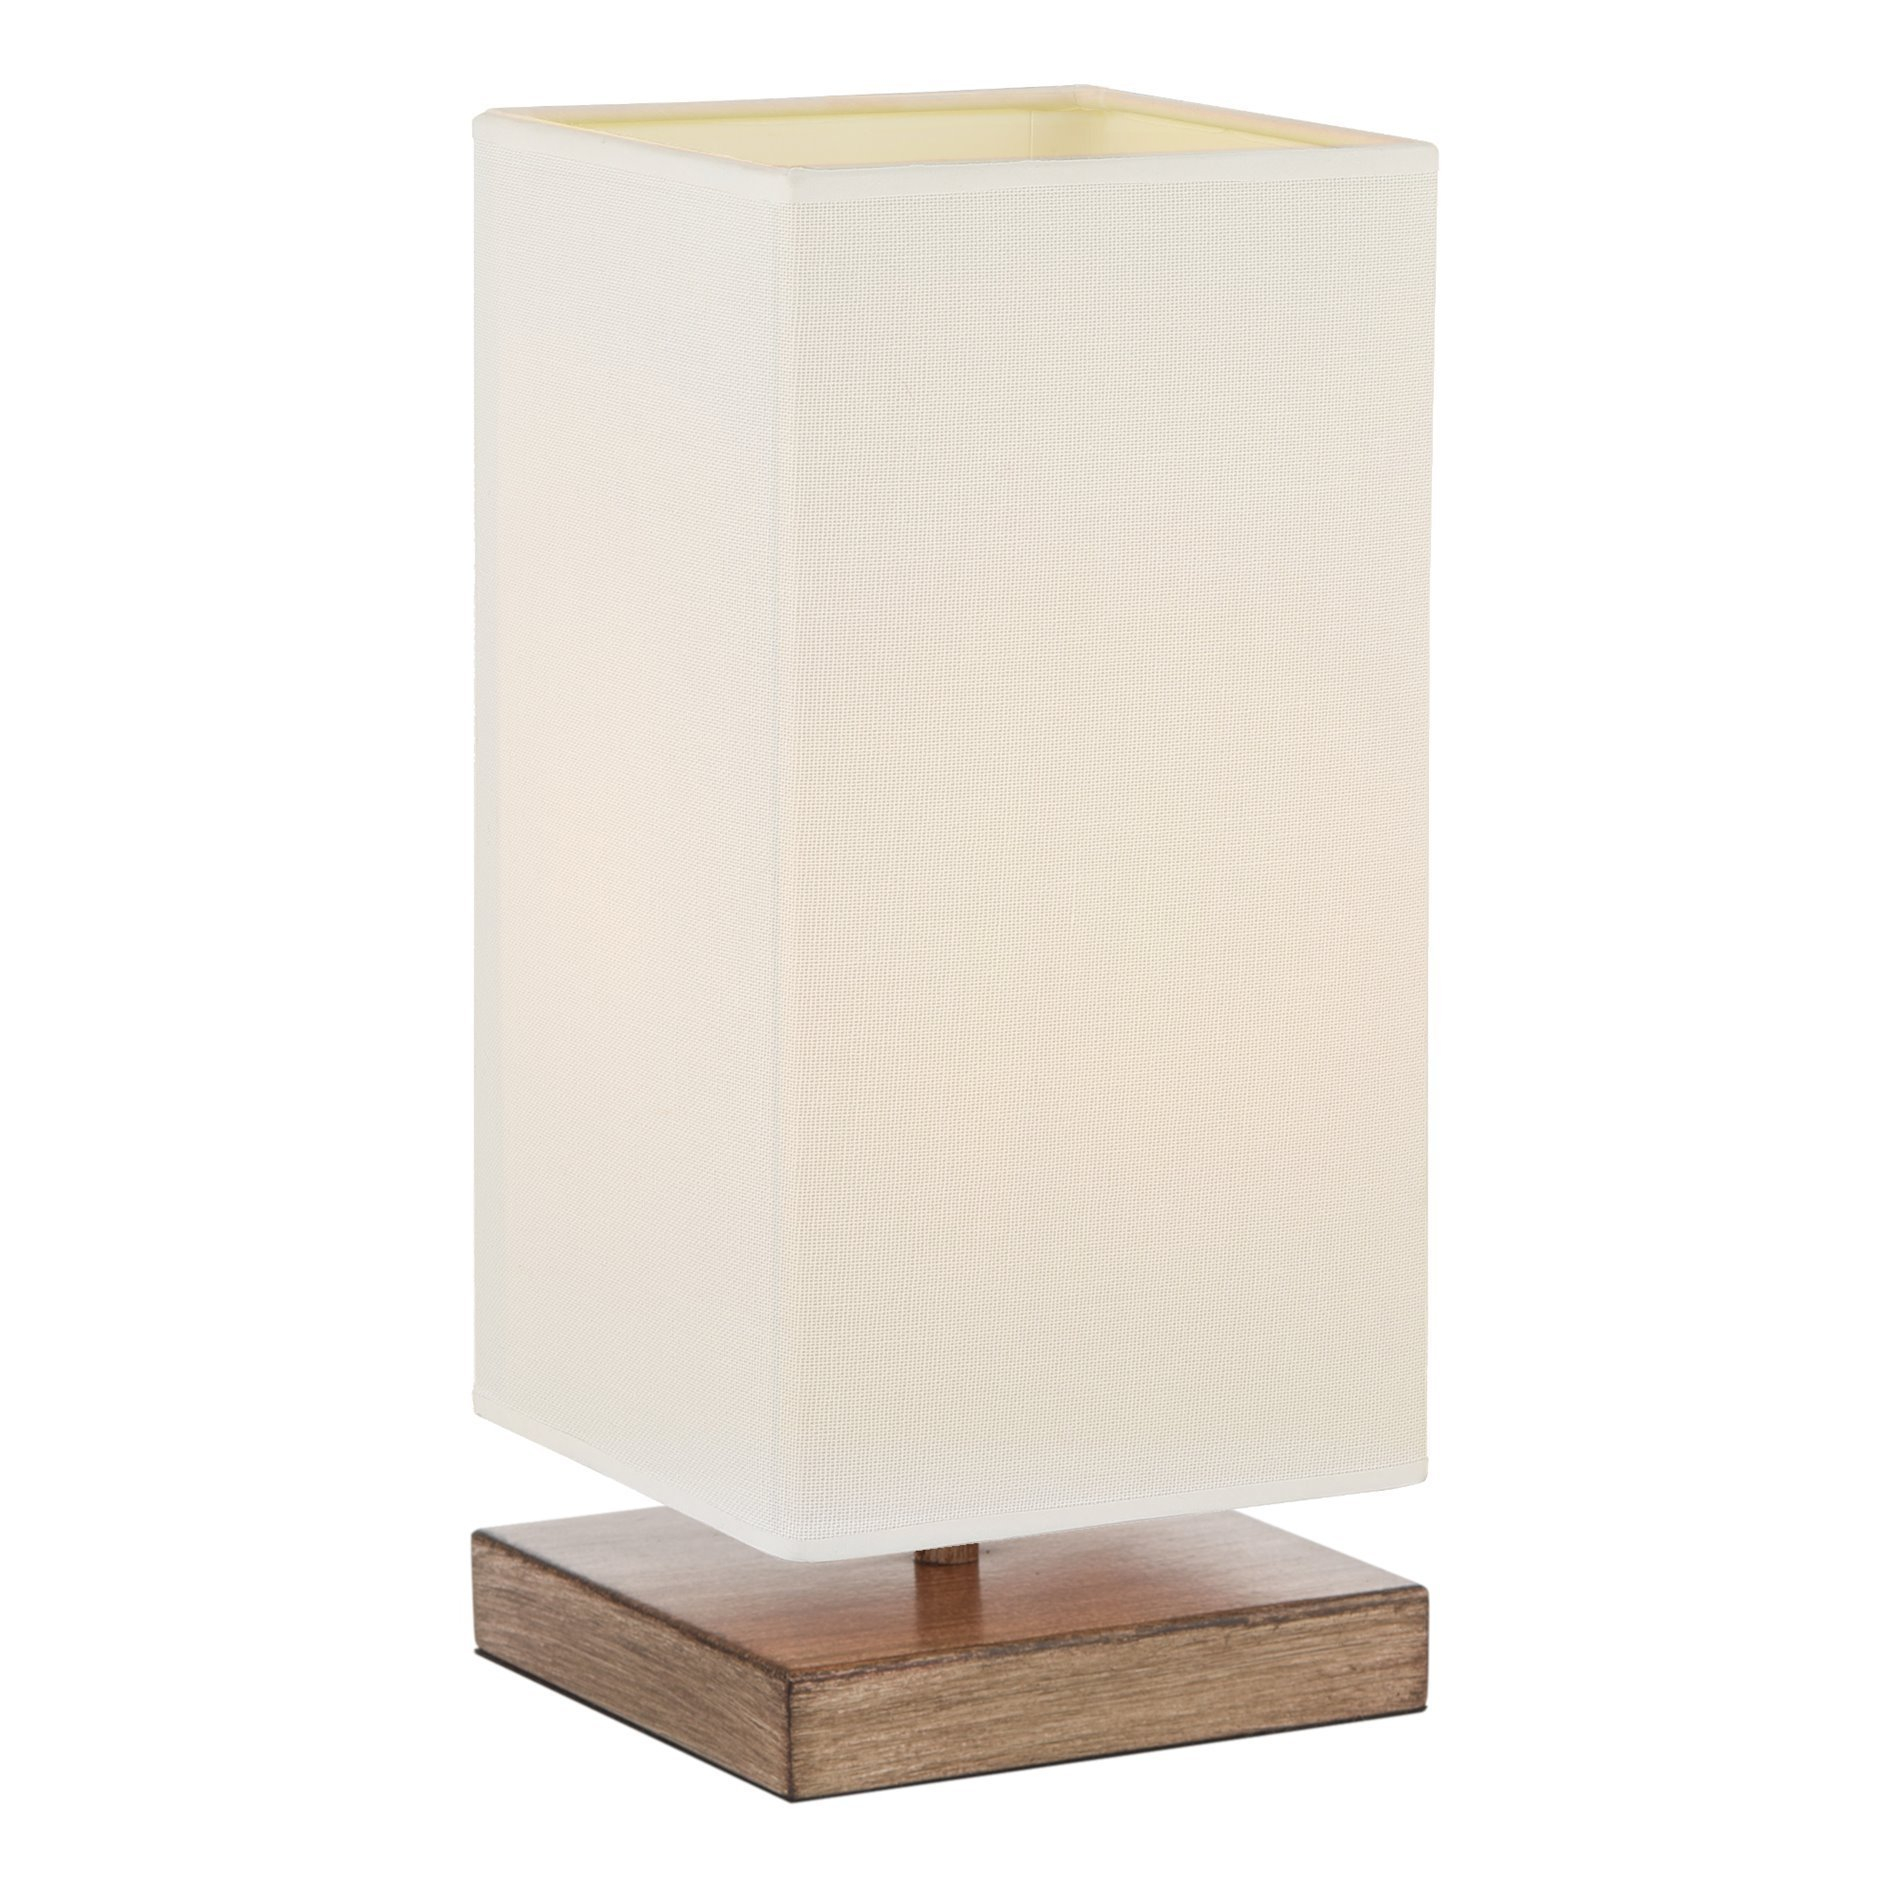 Kira Home Lucerna 13'' Touch Bedside Table Lamp + 4W LED Bulb (40W eq.) Energy Efficient, Eco-Friendly, Wood Style Finish + White Canvas Shade